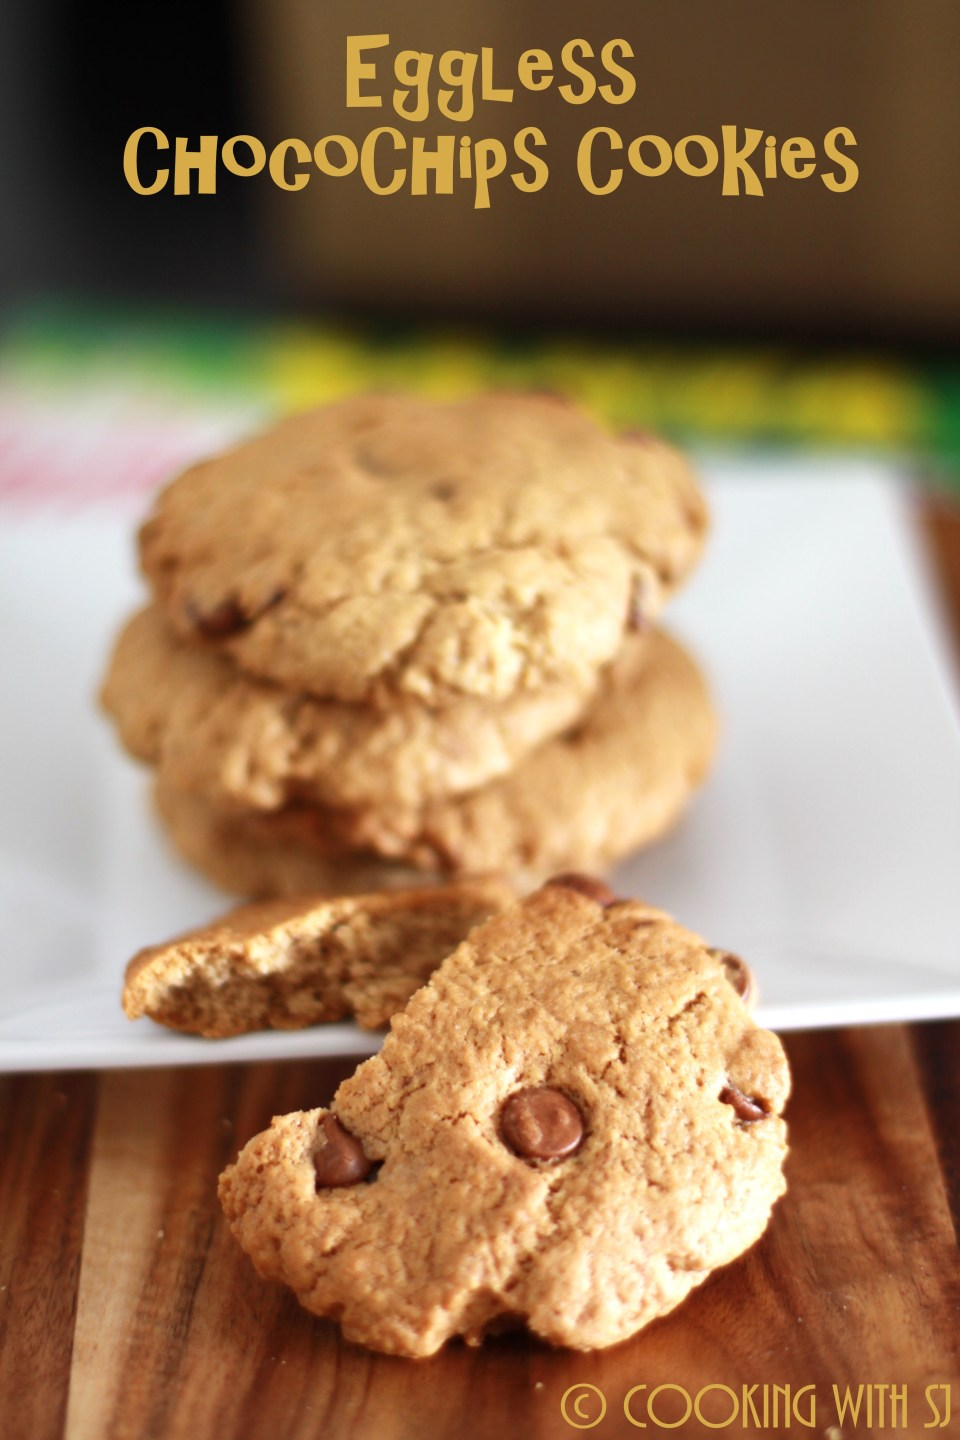 choco-chips cookies